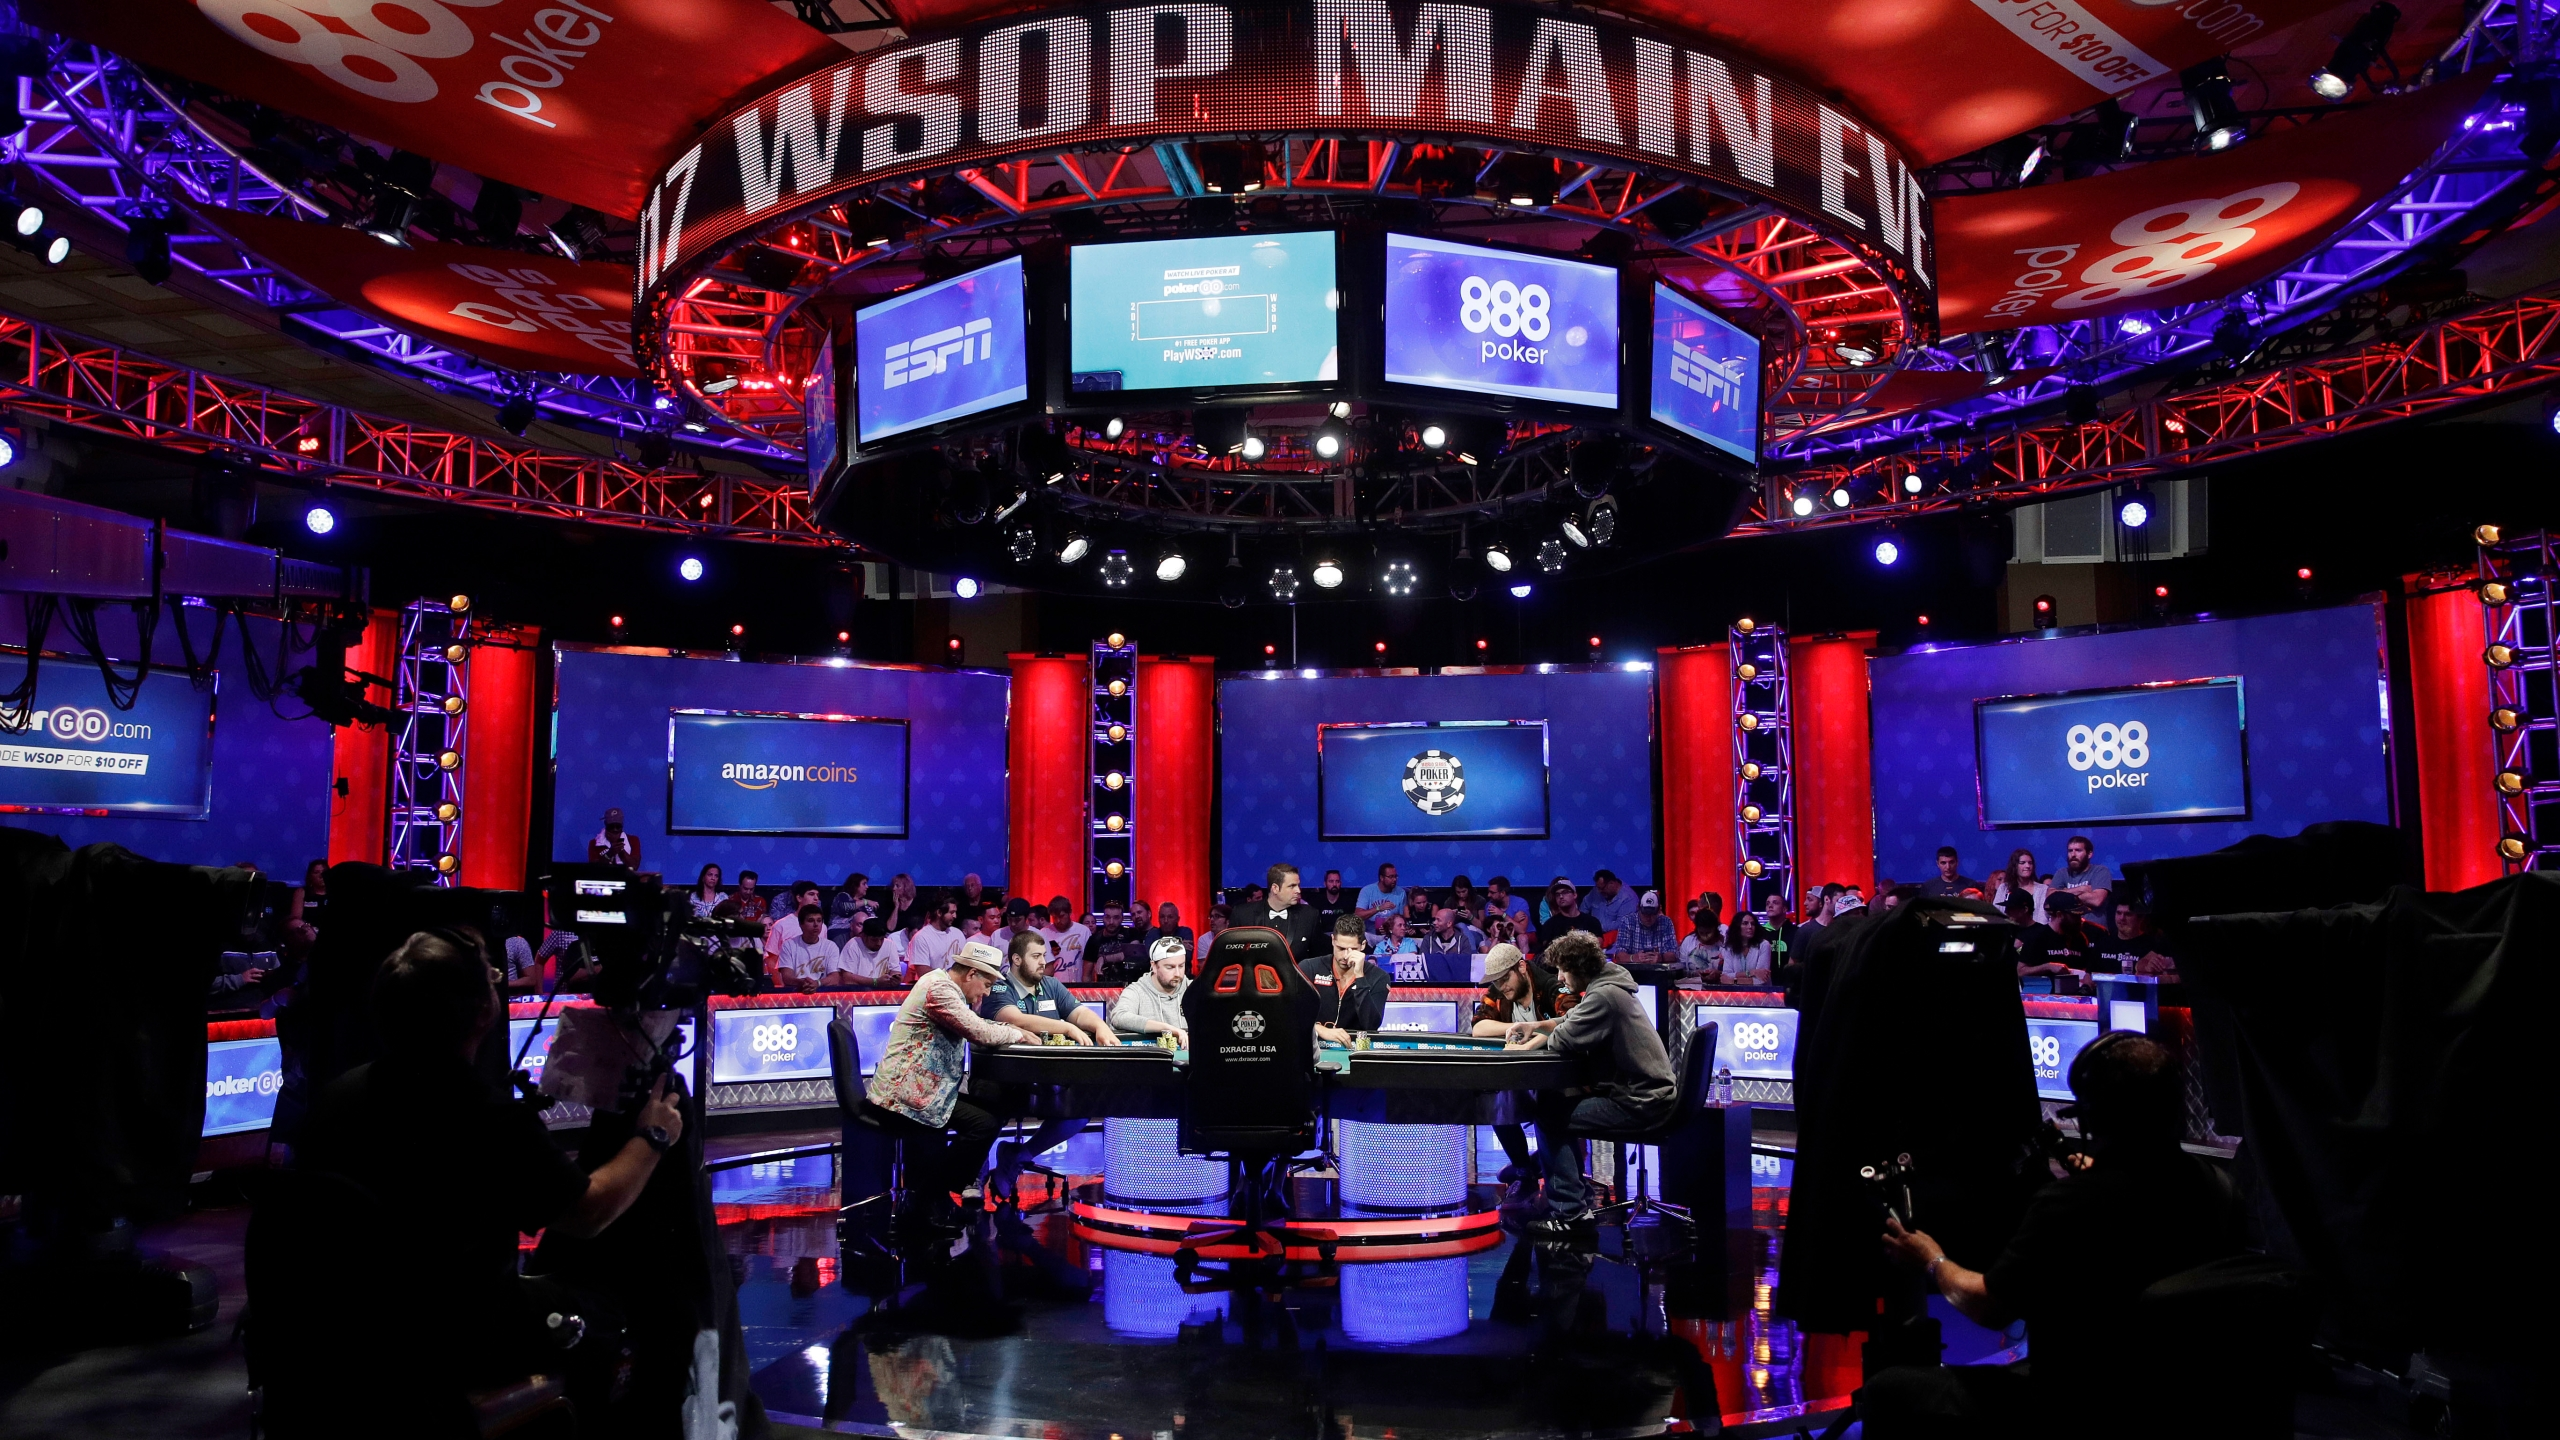 World_Series_of_Poker_78392-159532.jpg29677122